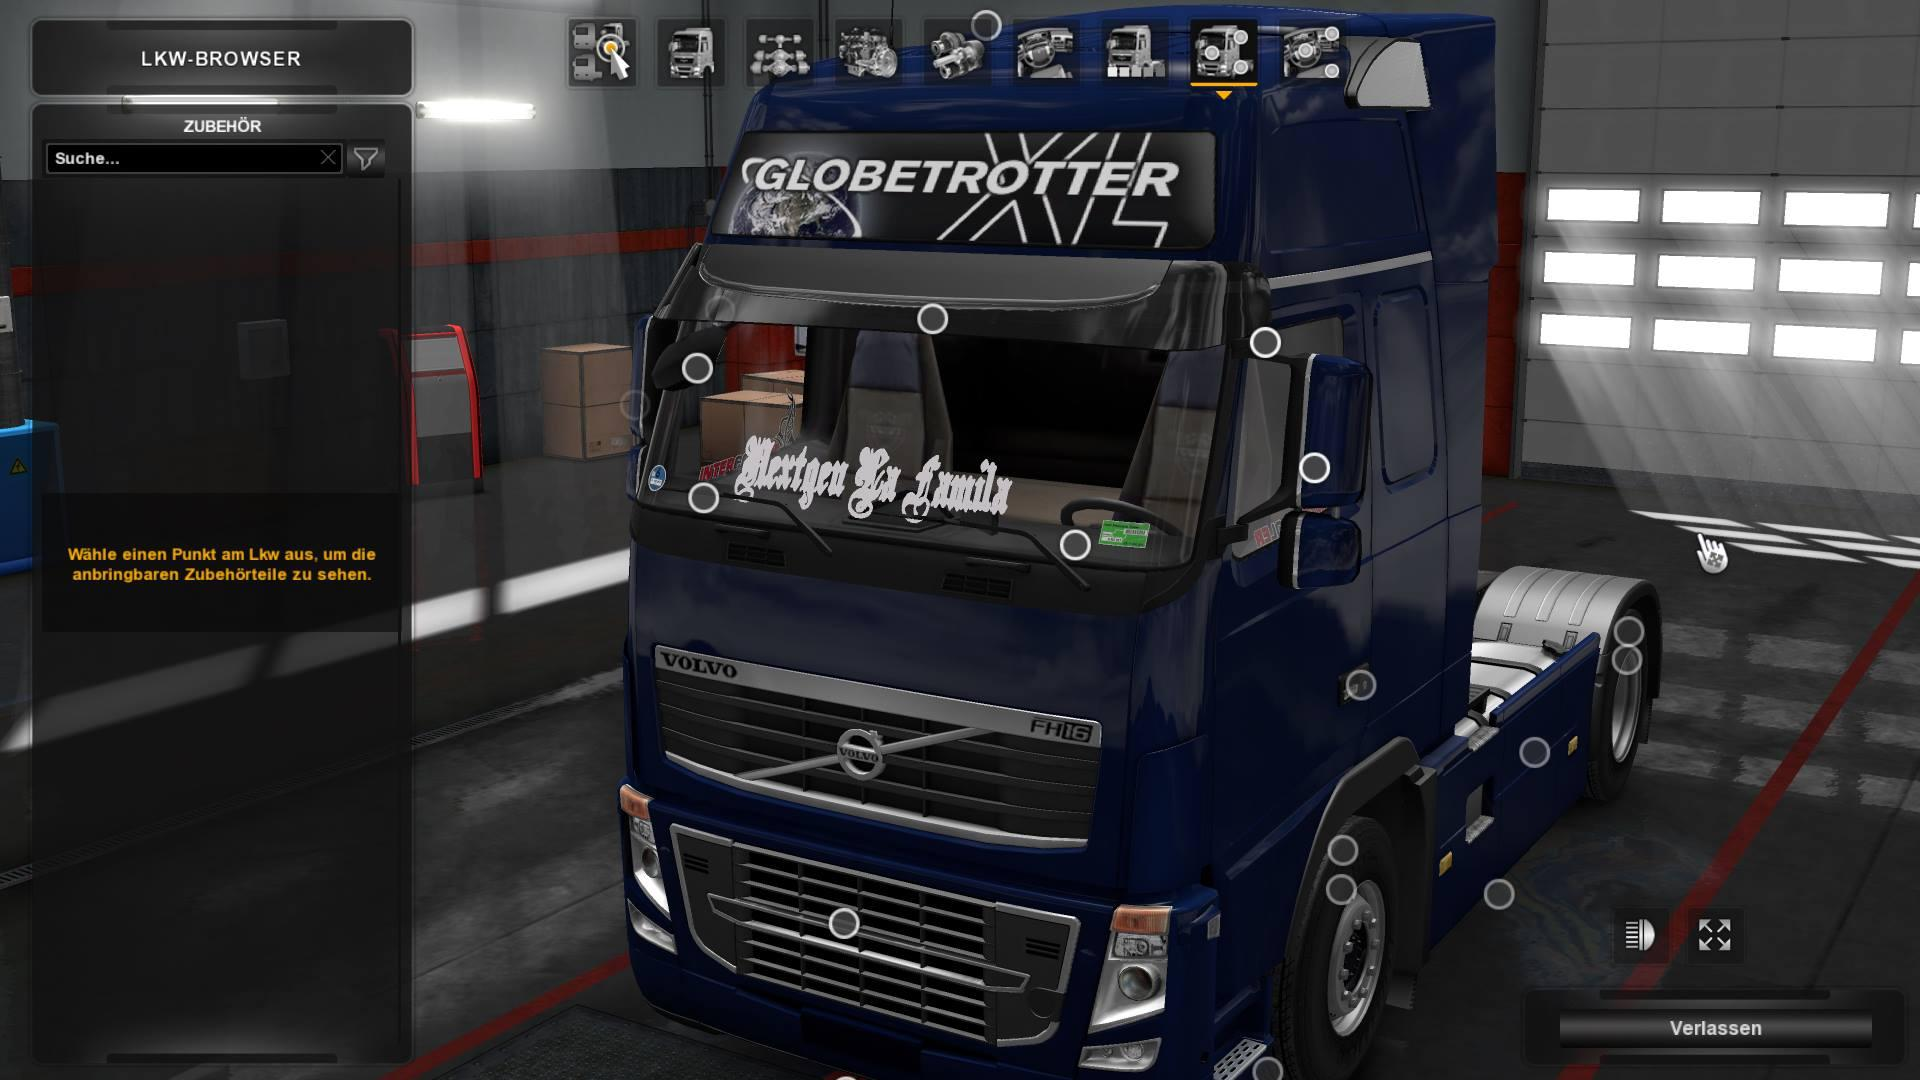 Ets2 Mods Window Sticker Scs